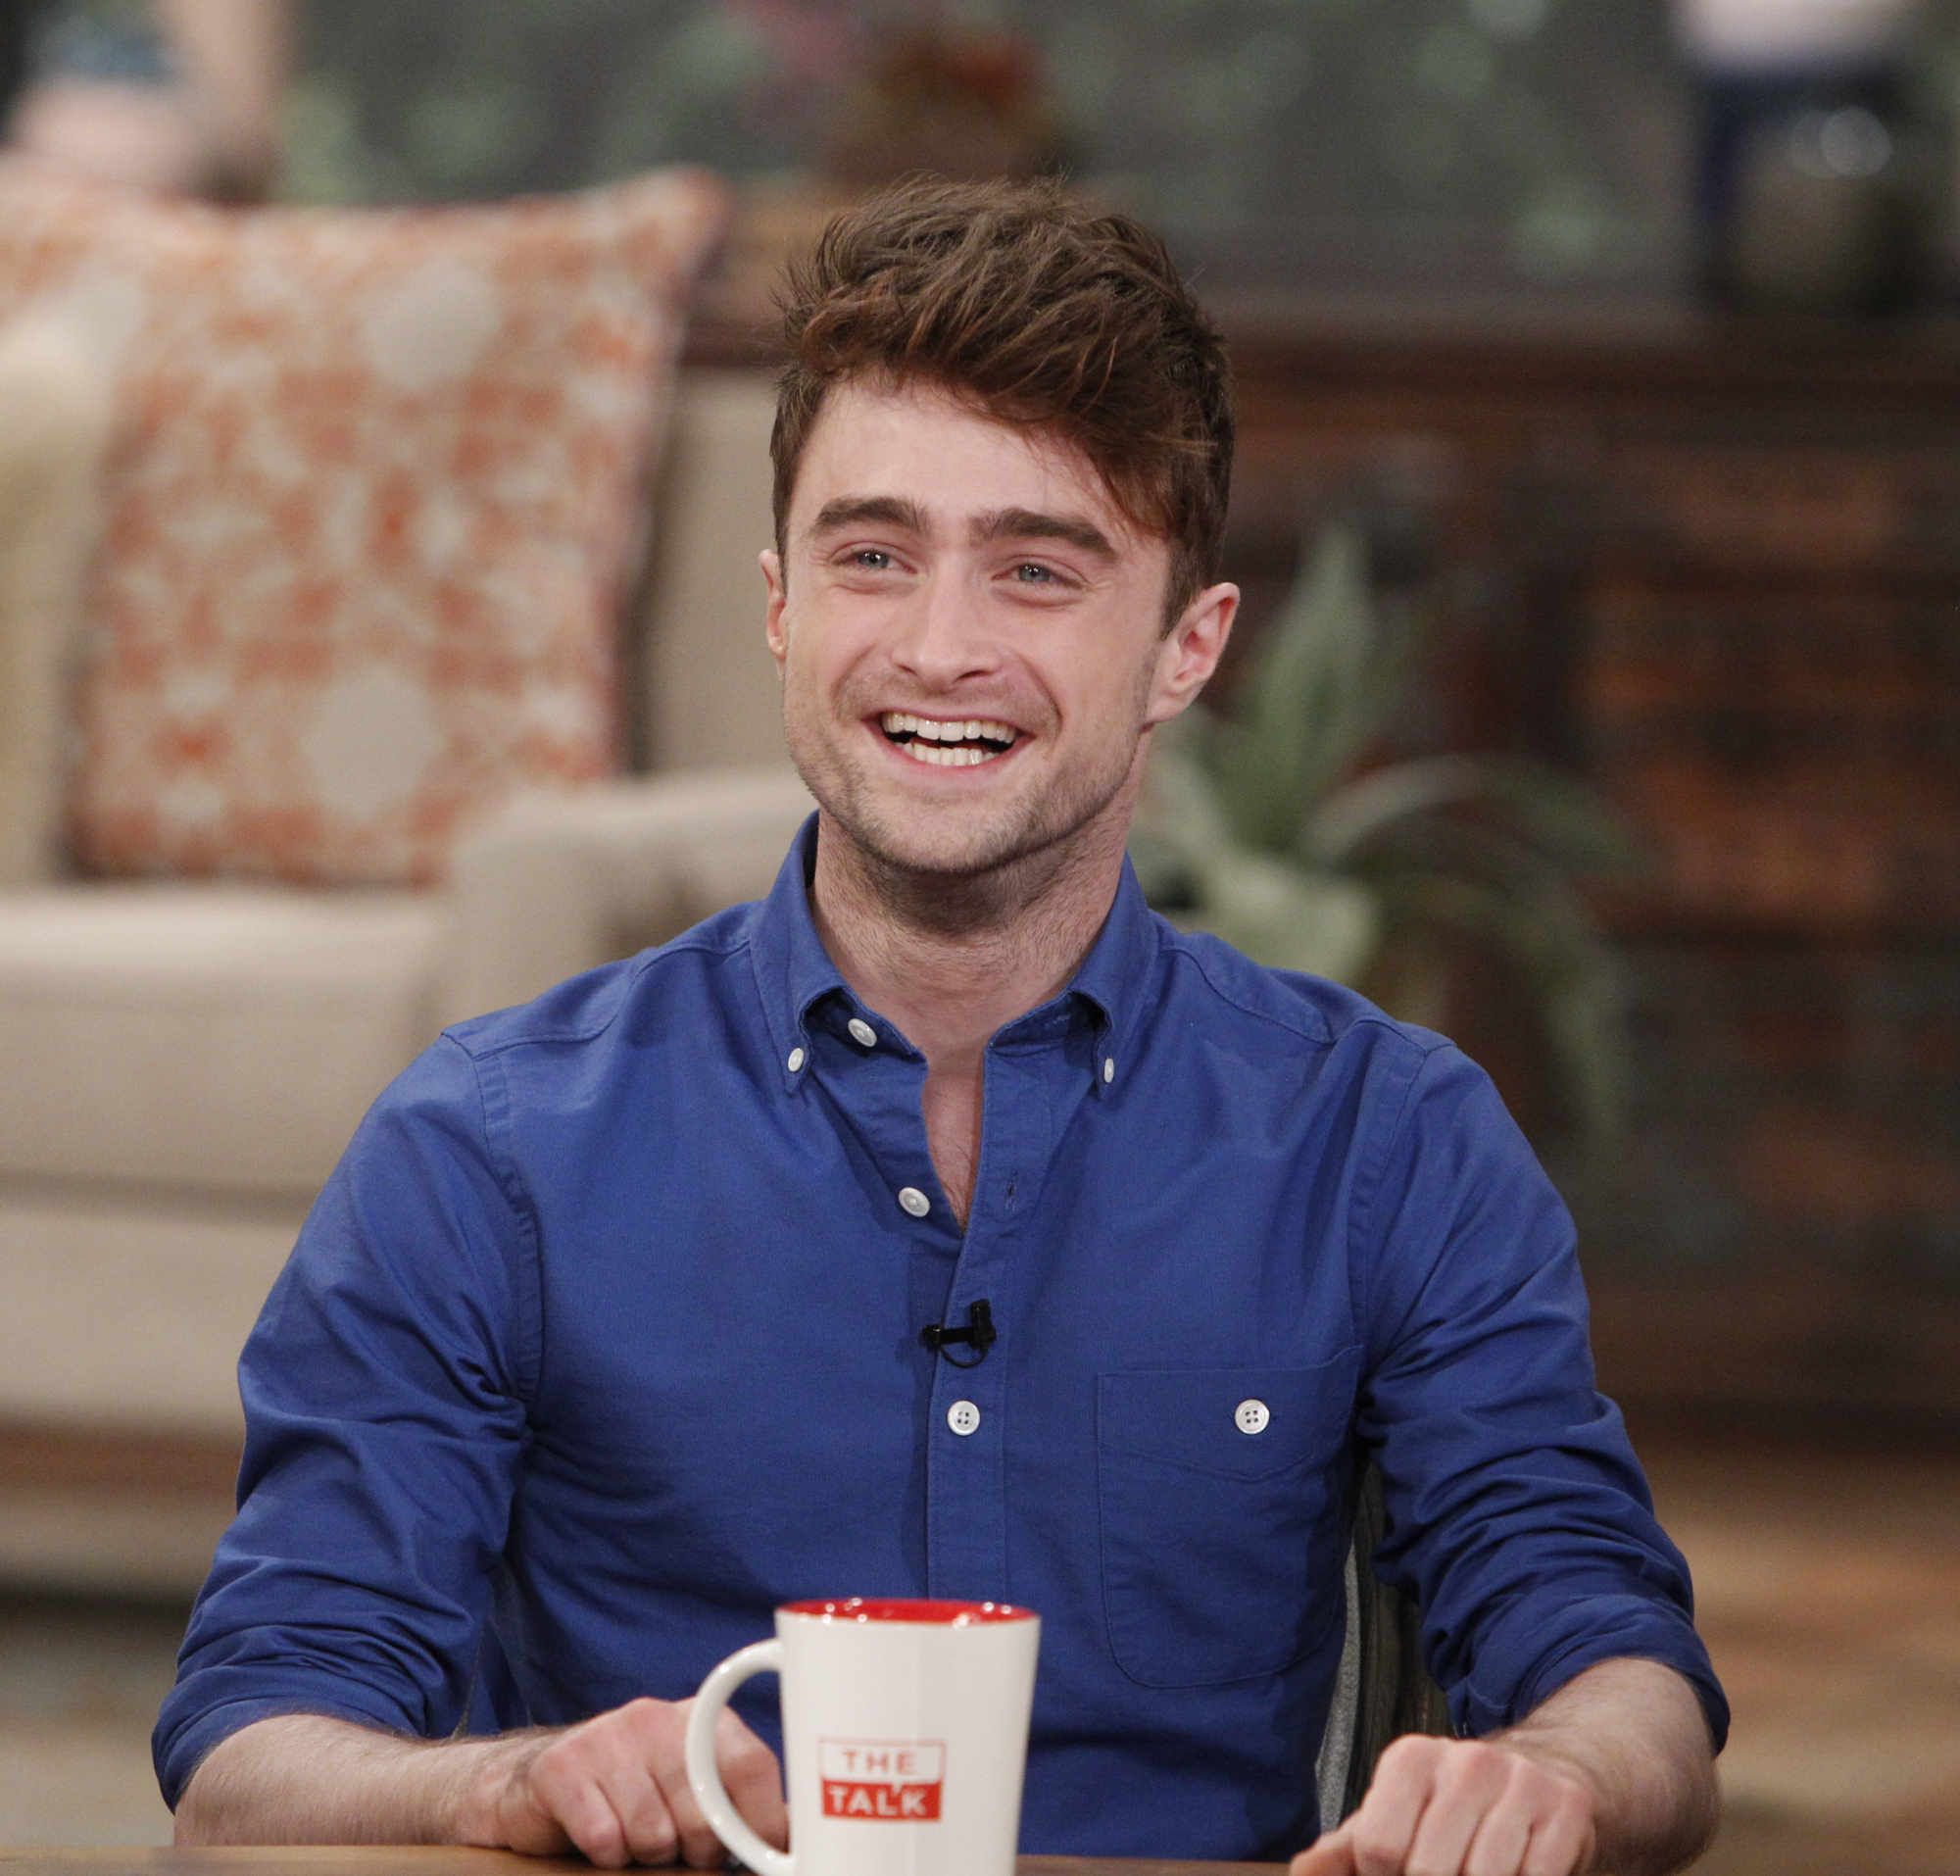 Daniel Radcliffe on